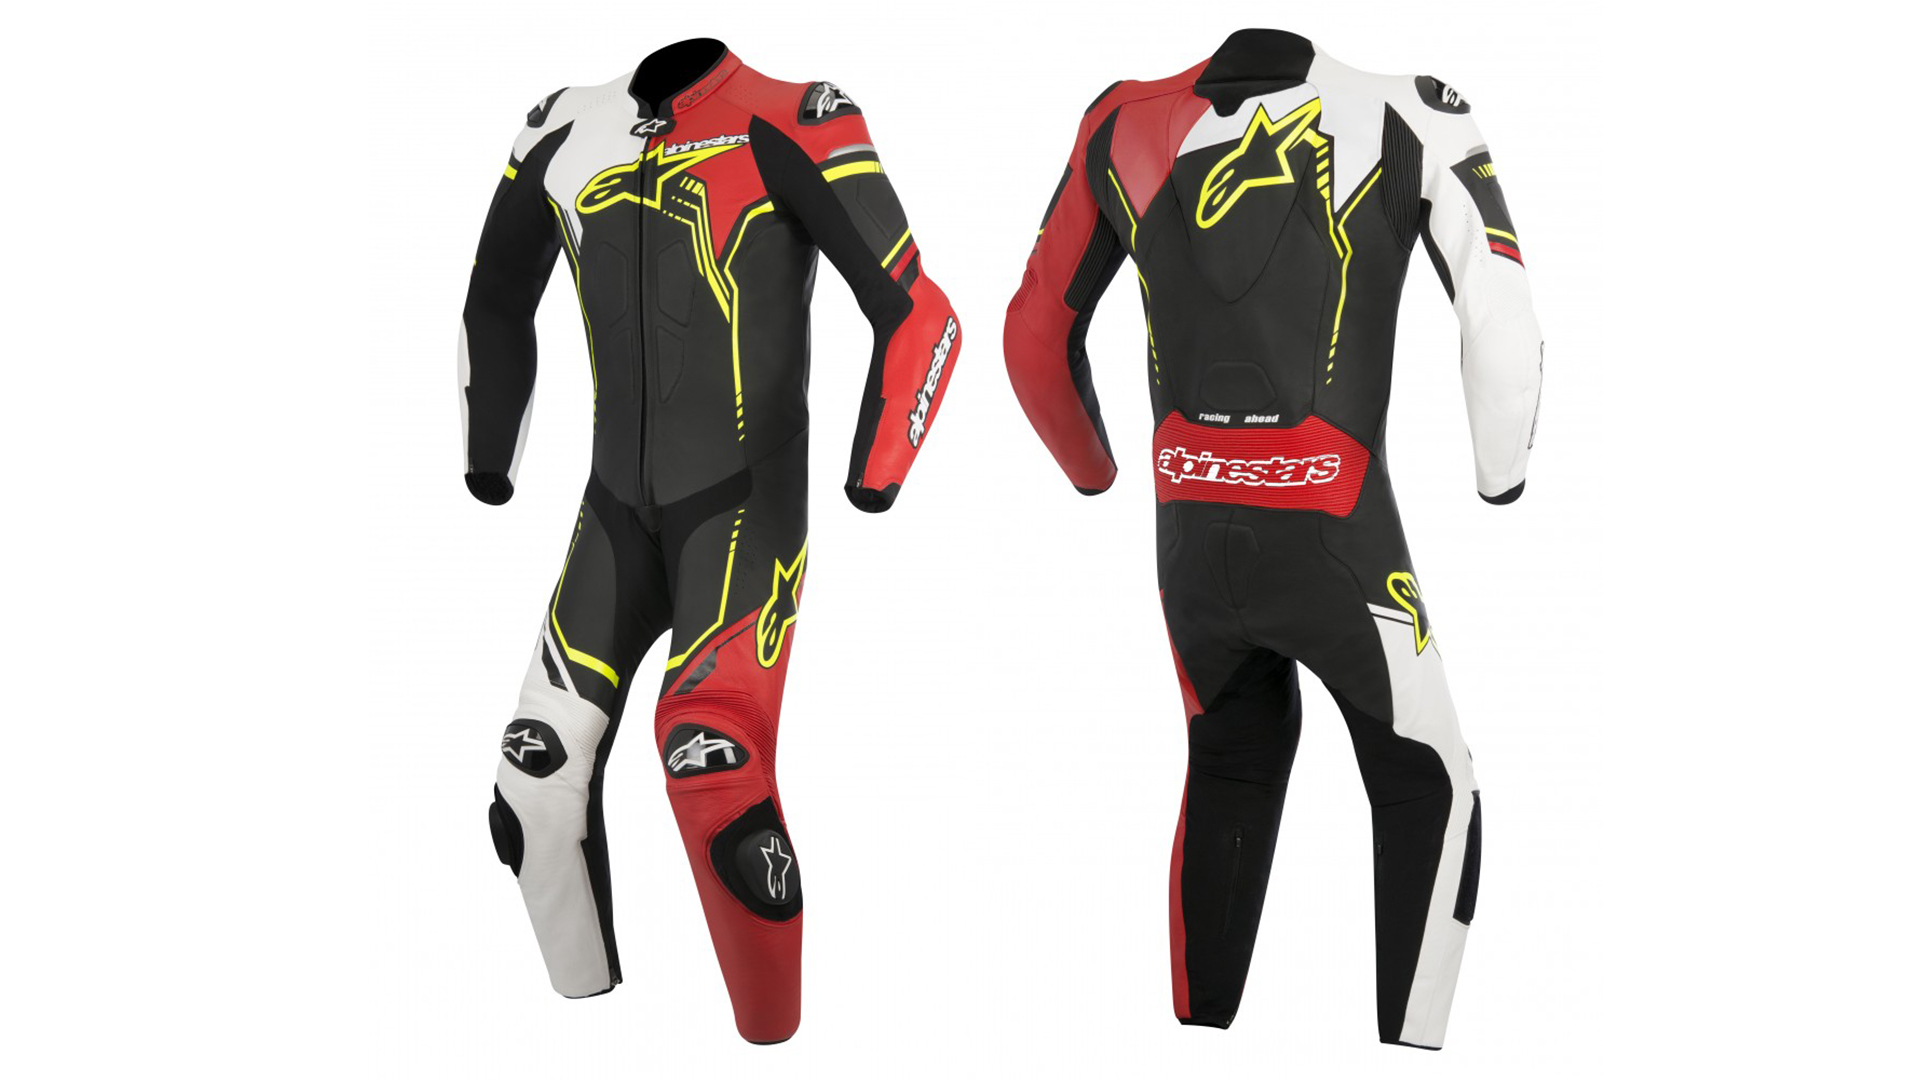 2017 Alpinestars Gear Is Here In Black, White, and Red - autoevolution